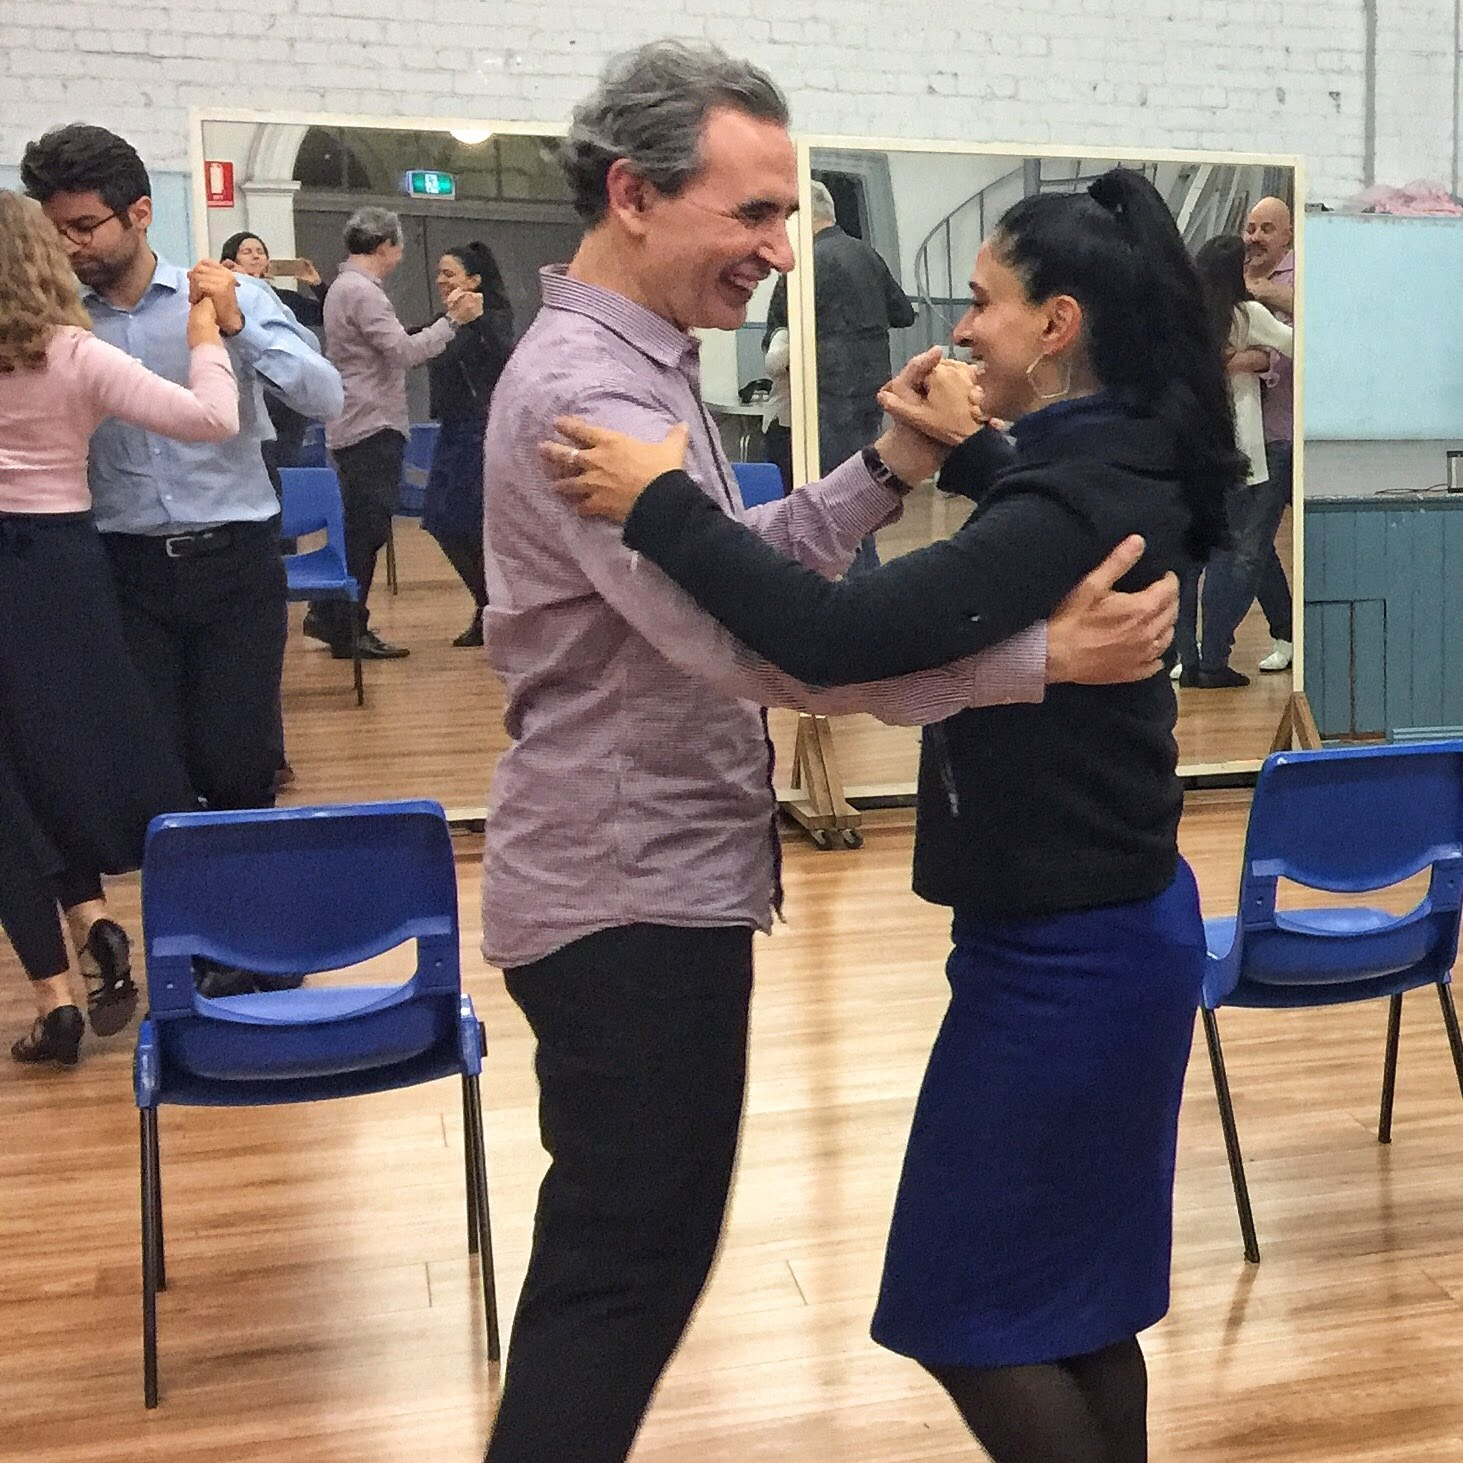 north sydney bondi glebe tango lessons courses studios instructors best